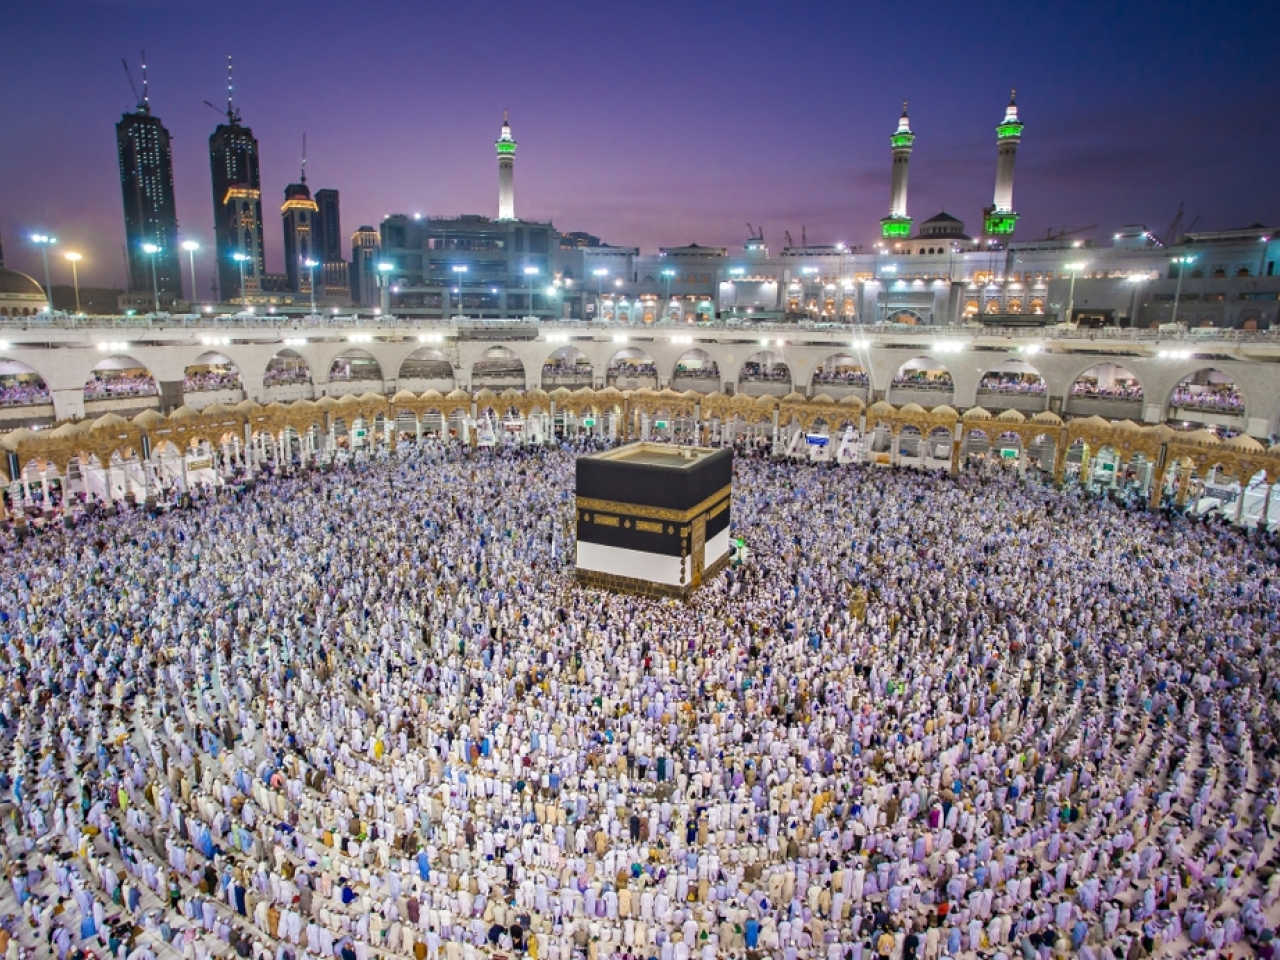 Muslims attend the haji in Mecca in 2018. The pilgrimage is considered a must for able-bodied Muslims at least once in their lives. File image: Shutterstock